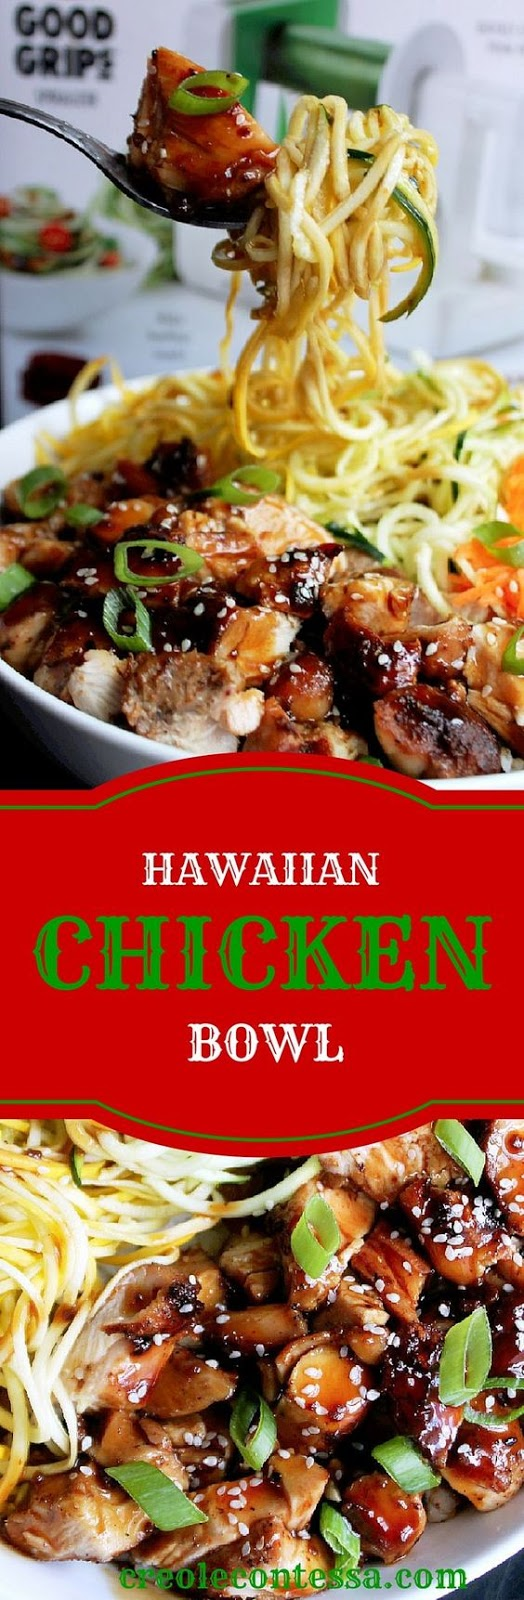 Hawaiian Chicken Bowl with OXO